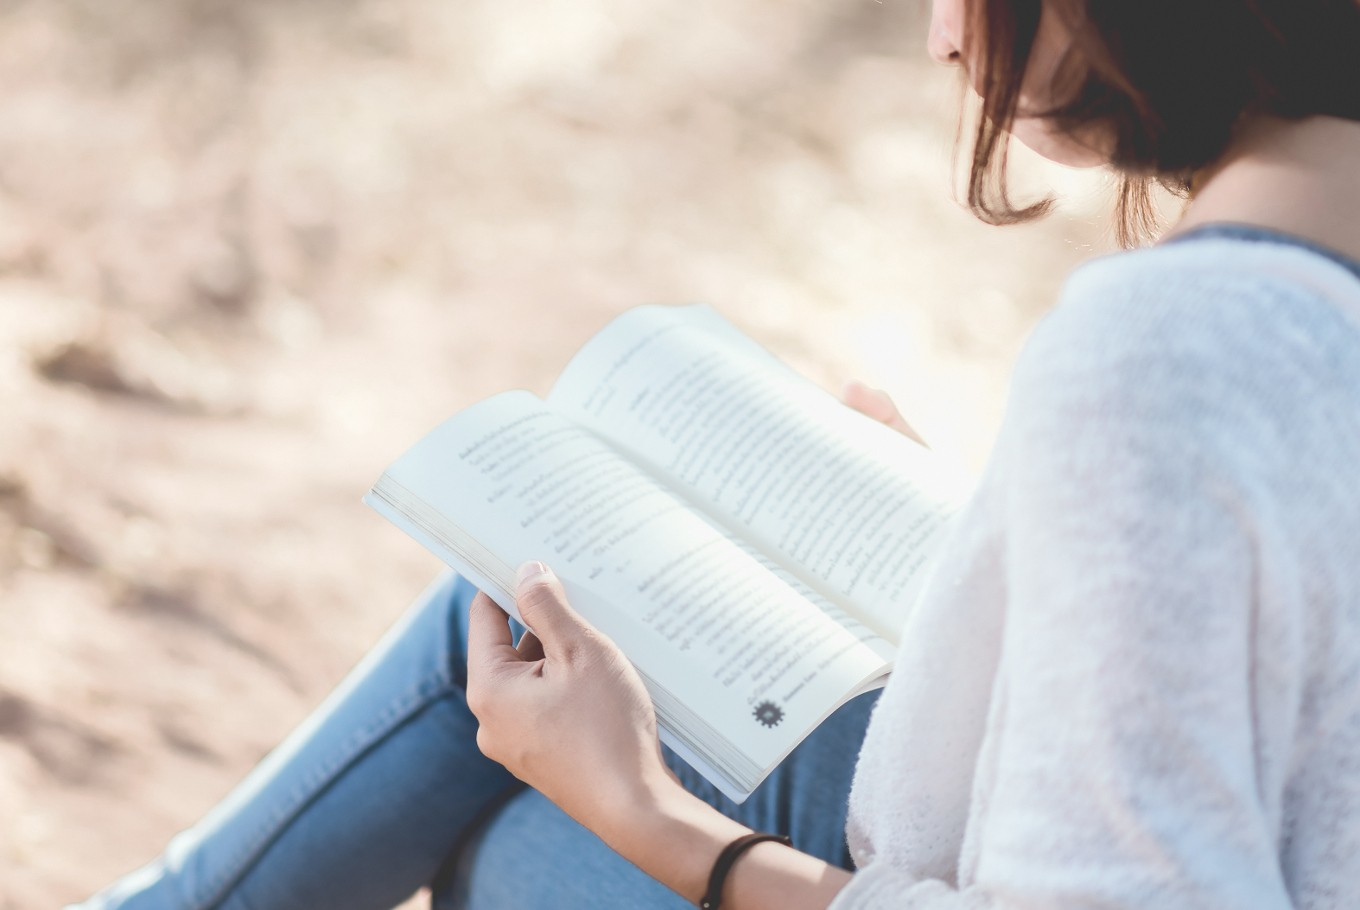 Reading has many physical and psychological benefits, including reducing your overall stress. (Shutterstock/File)